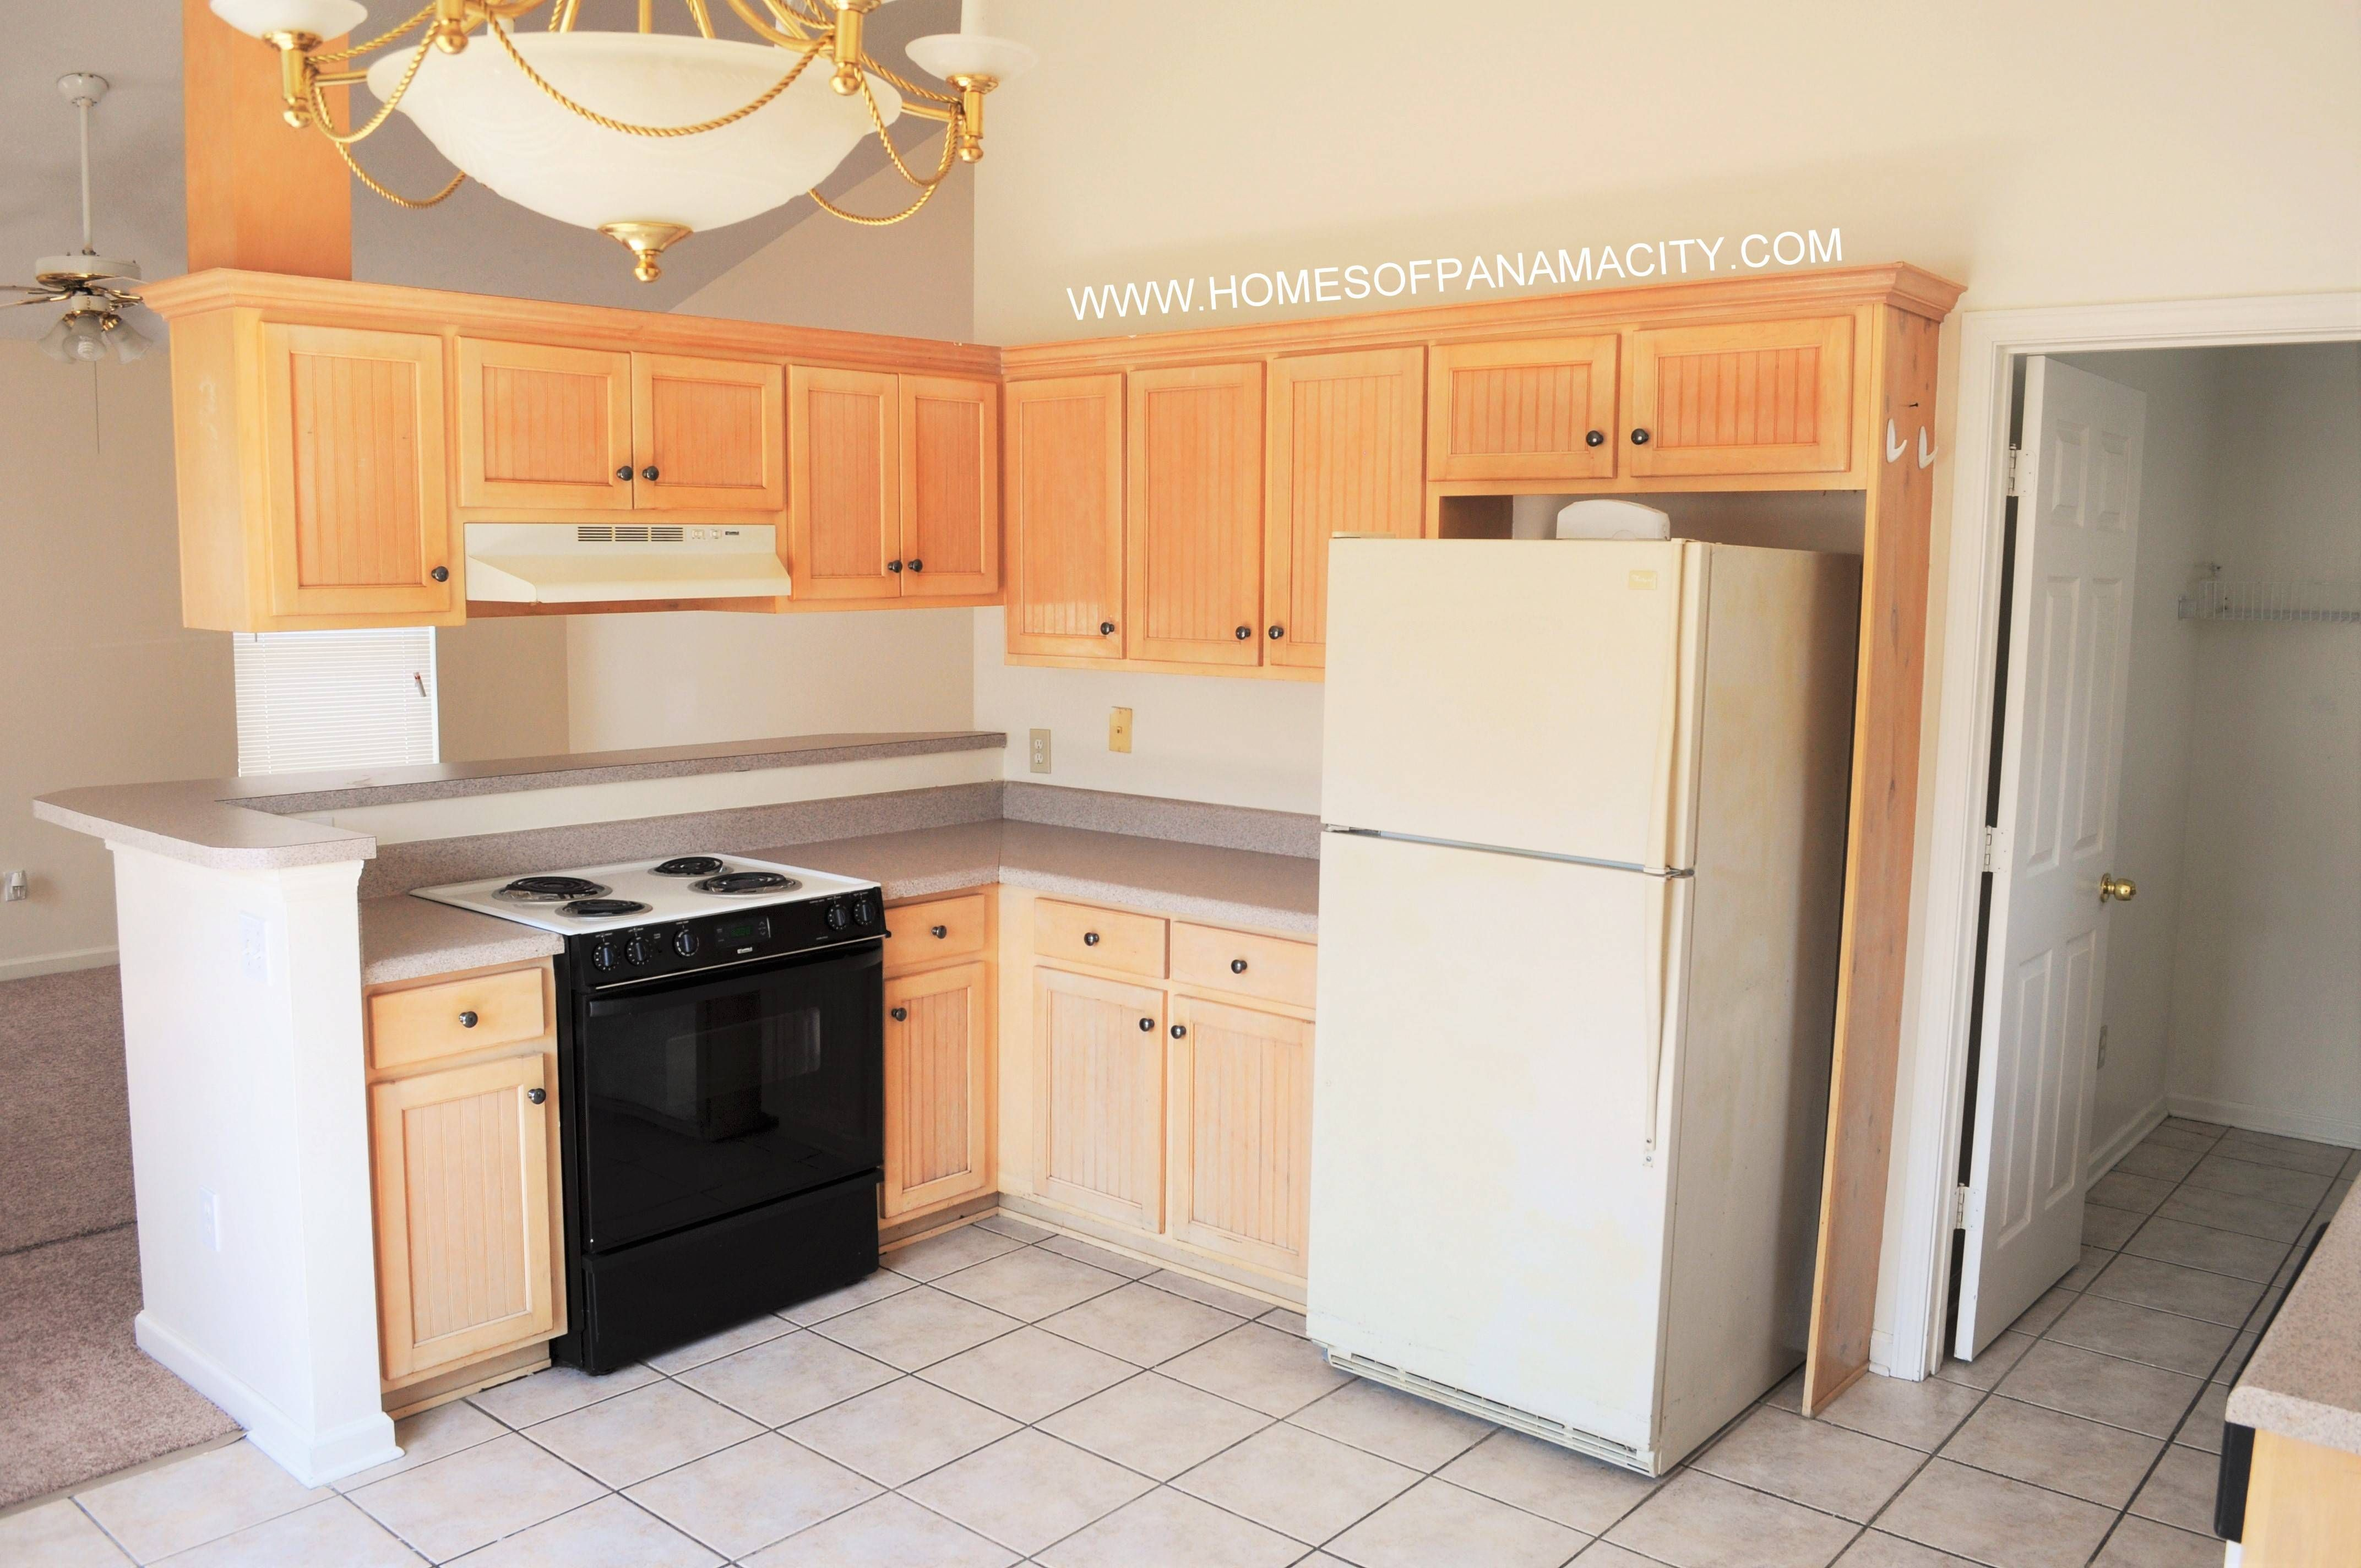 Open House For 3 Bed 2 Bath House In Gated Panama City Panama City Panama Panama City Beach Panama City Florida